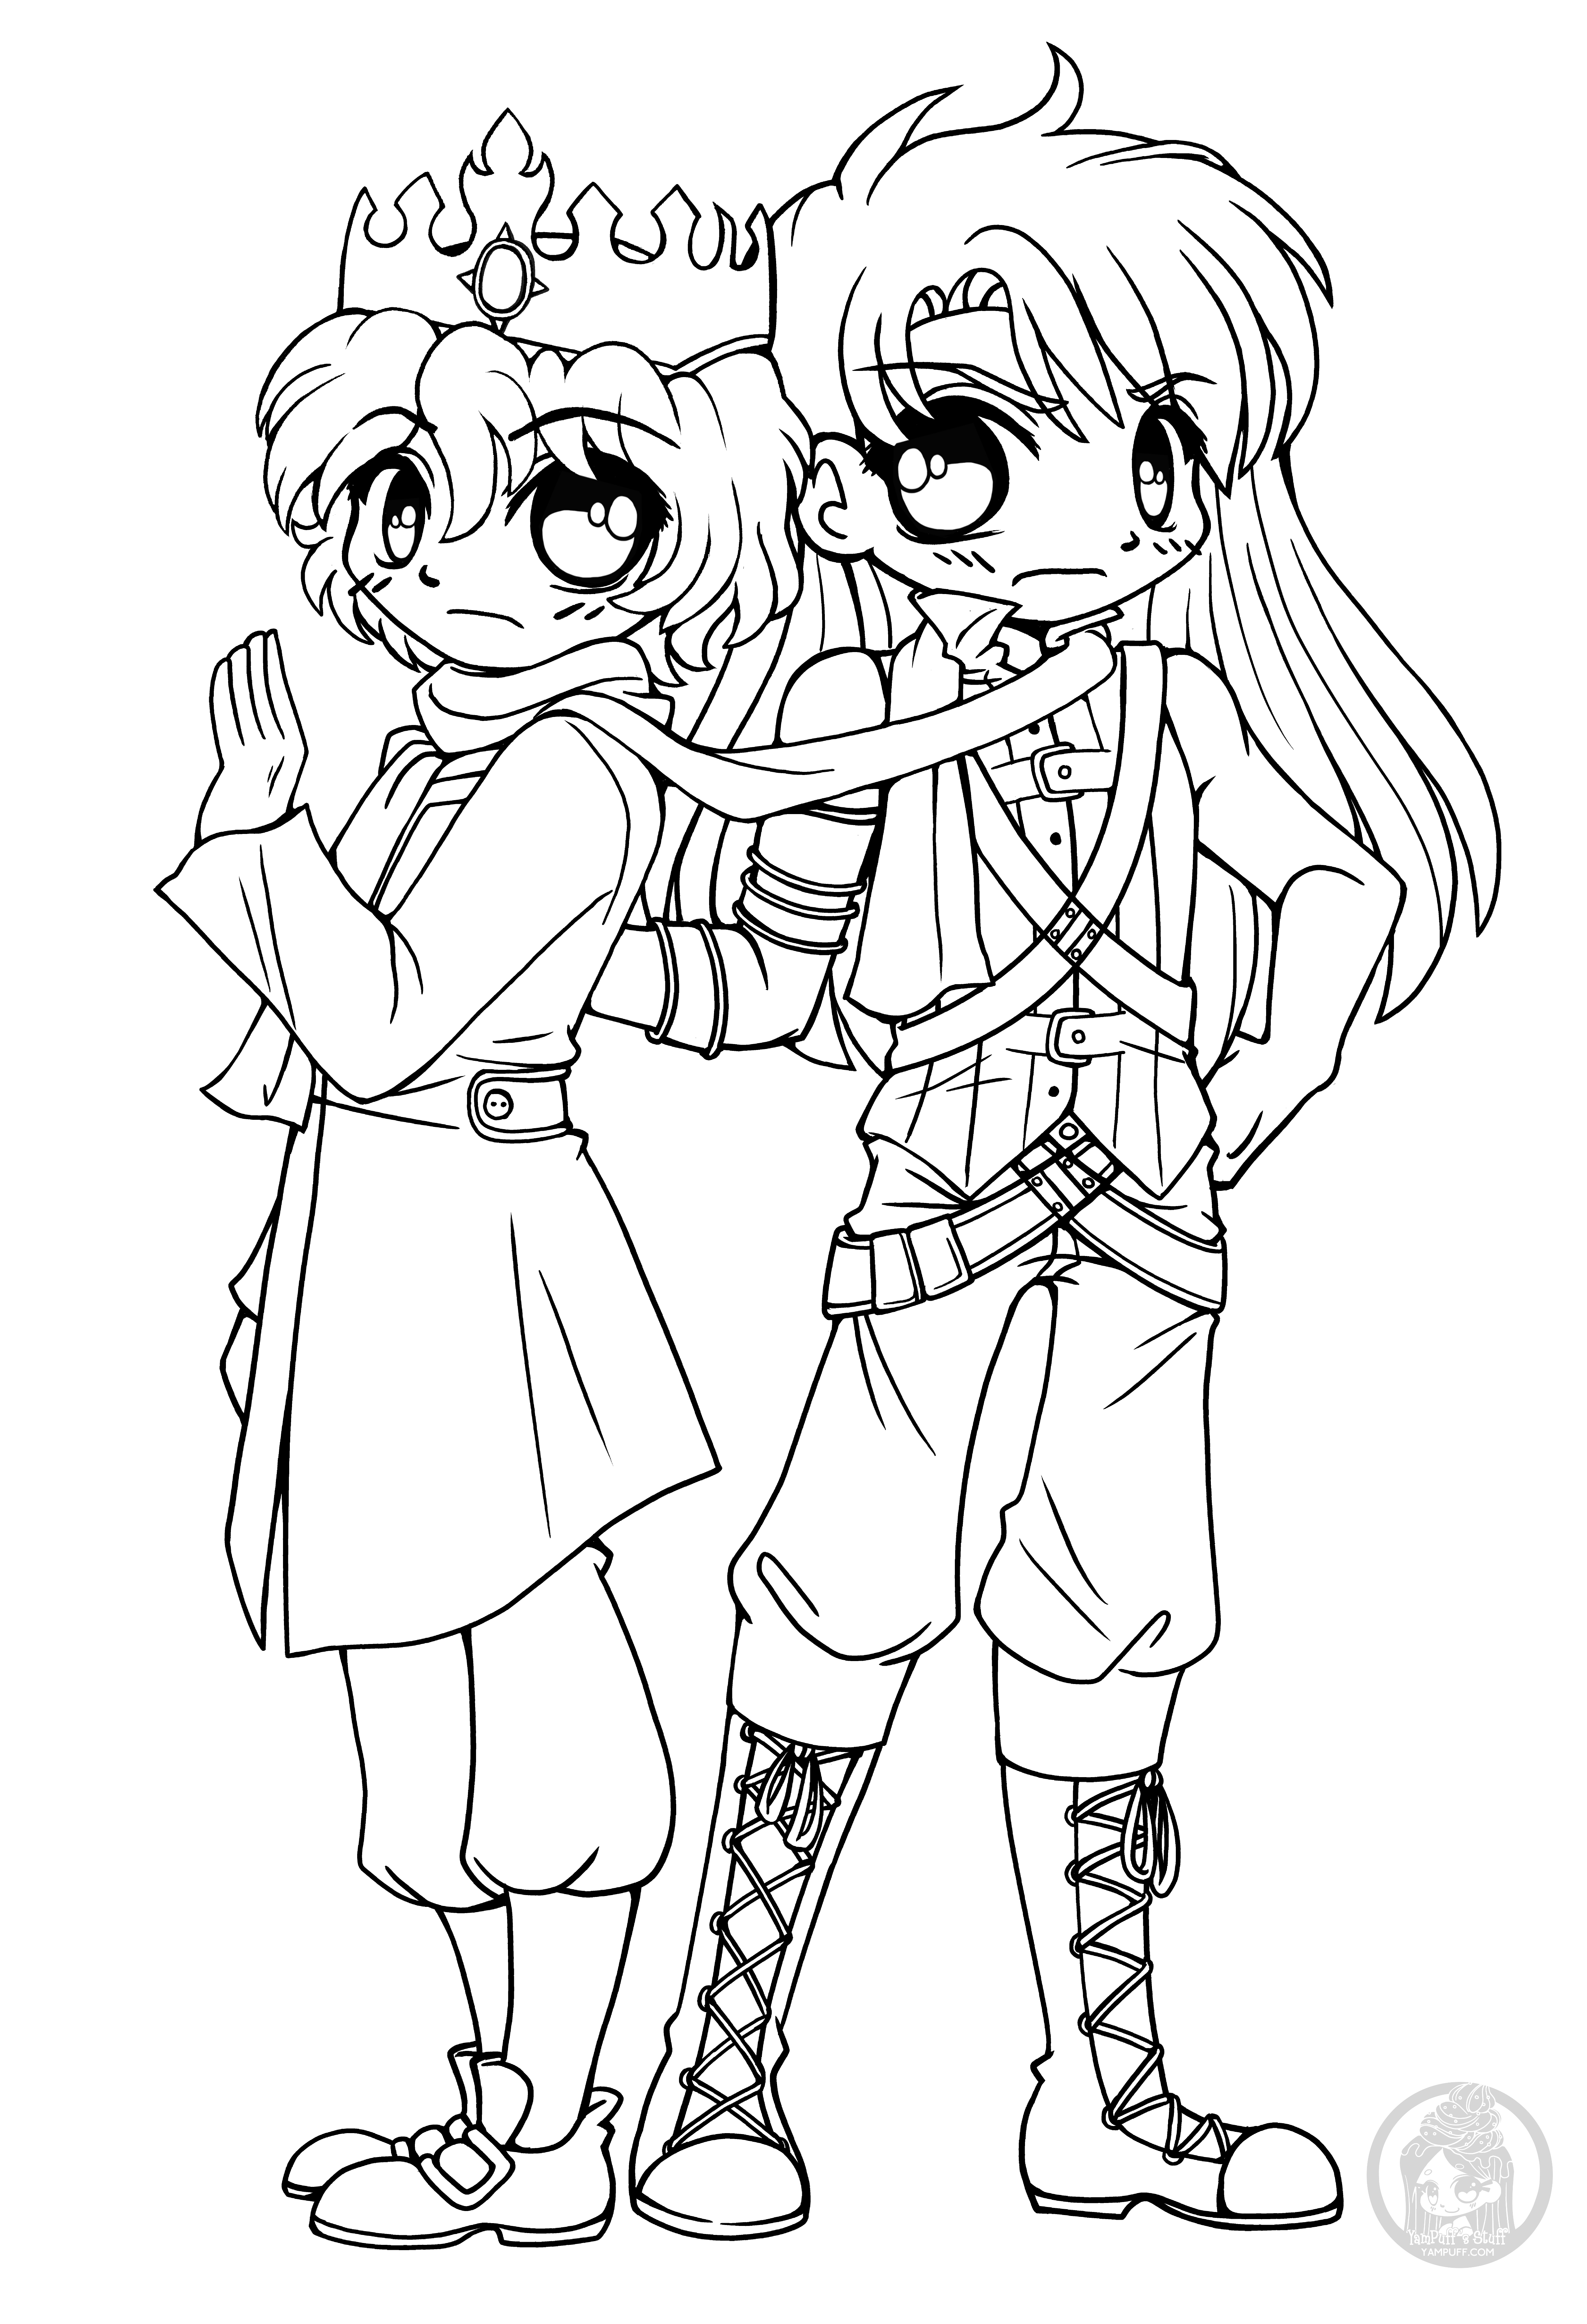 chibi couple coloring pages couple preliminary lineart by twistedpancreas on deviantart coloring couple pages chibi